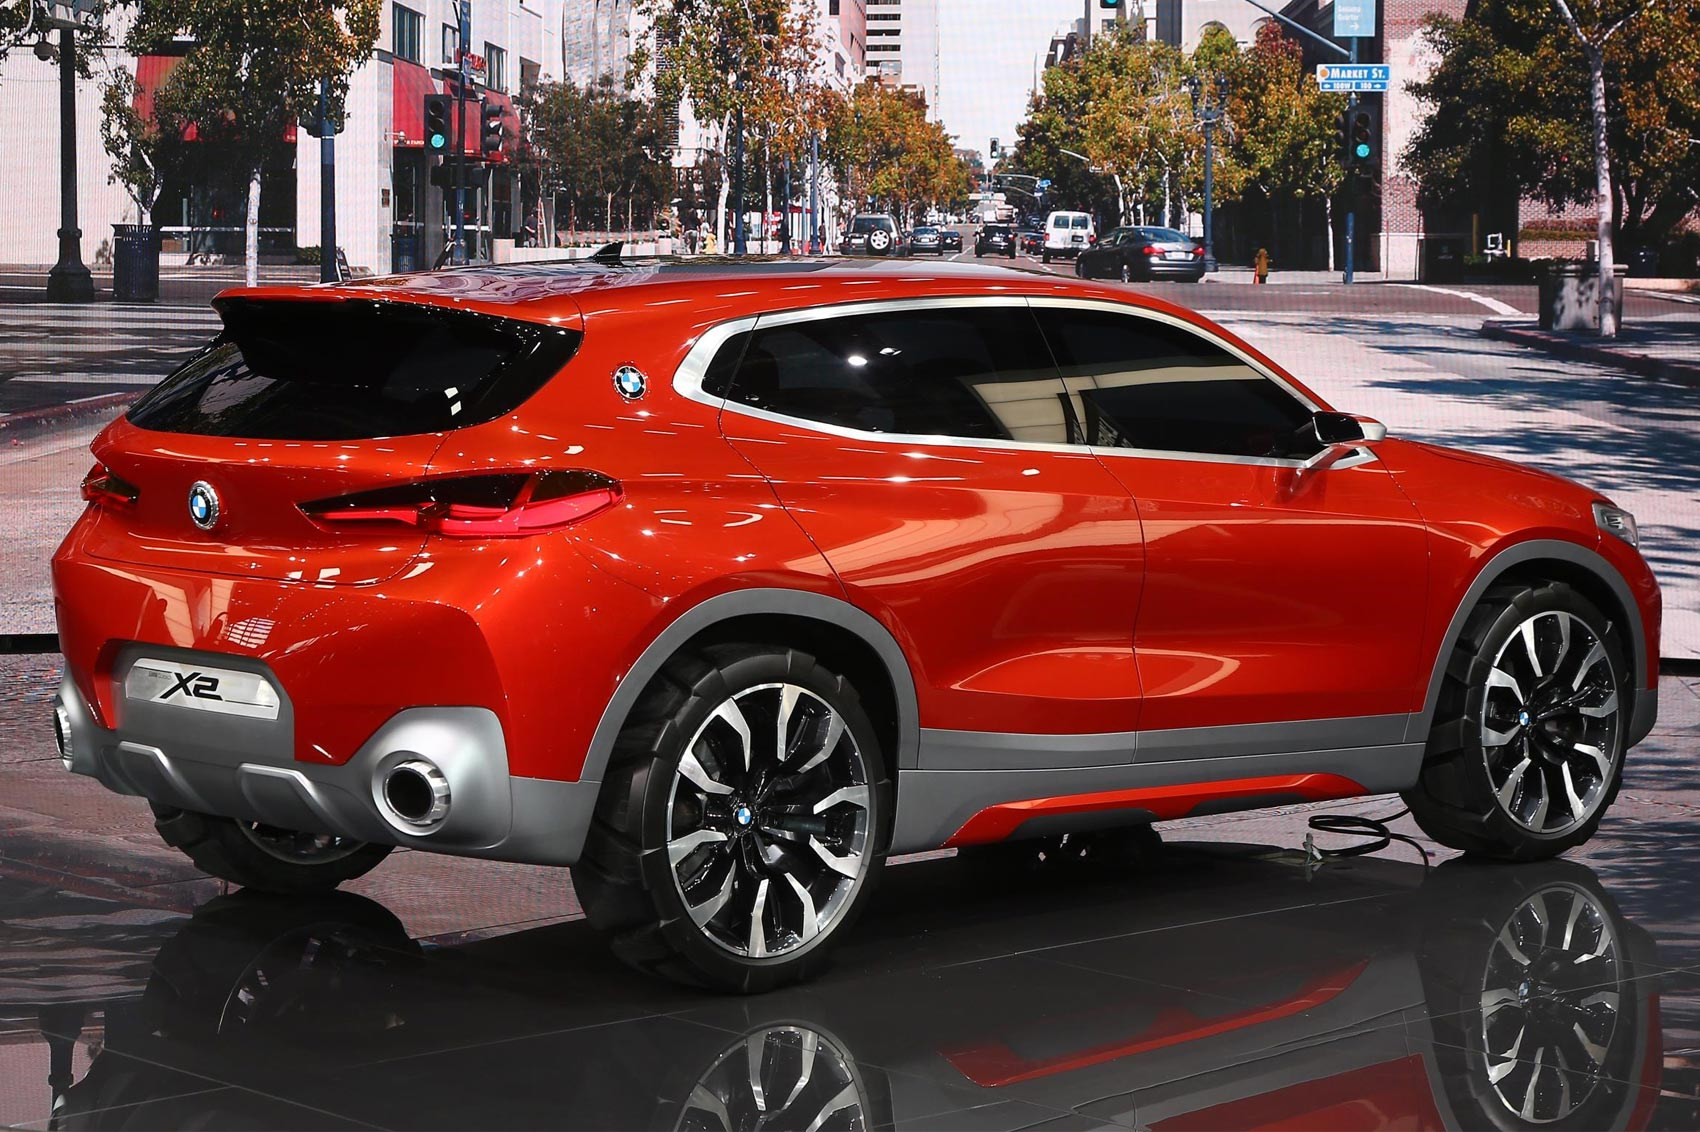 Five Doors Smaller Footprint Coupe Vibe X2 Strip Away The Concept